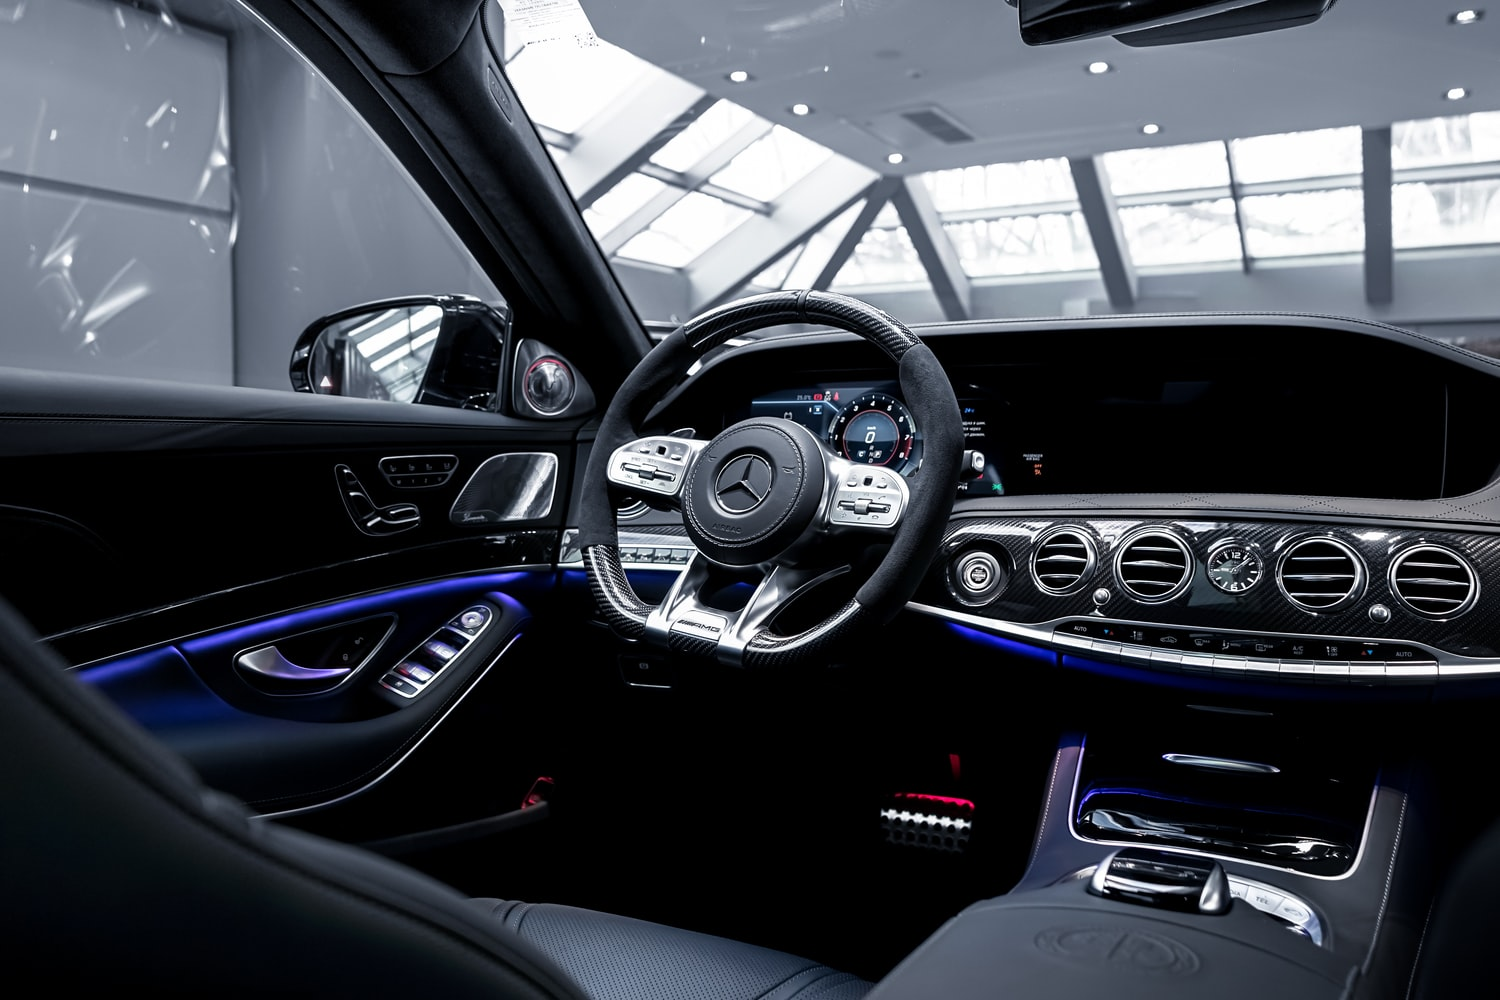 A luxurious interior lighting makeover of your vehicle